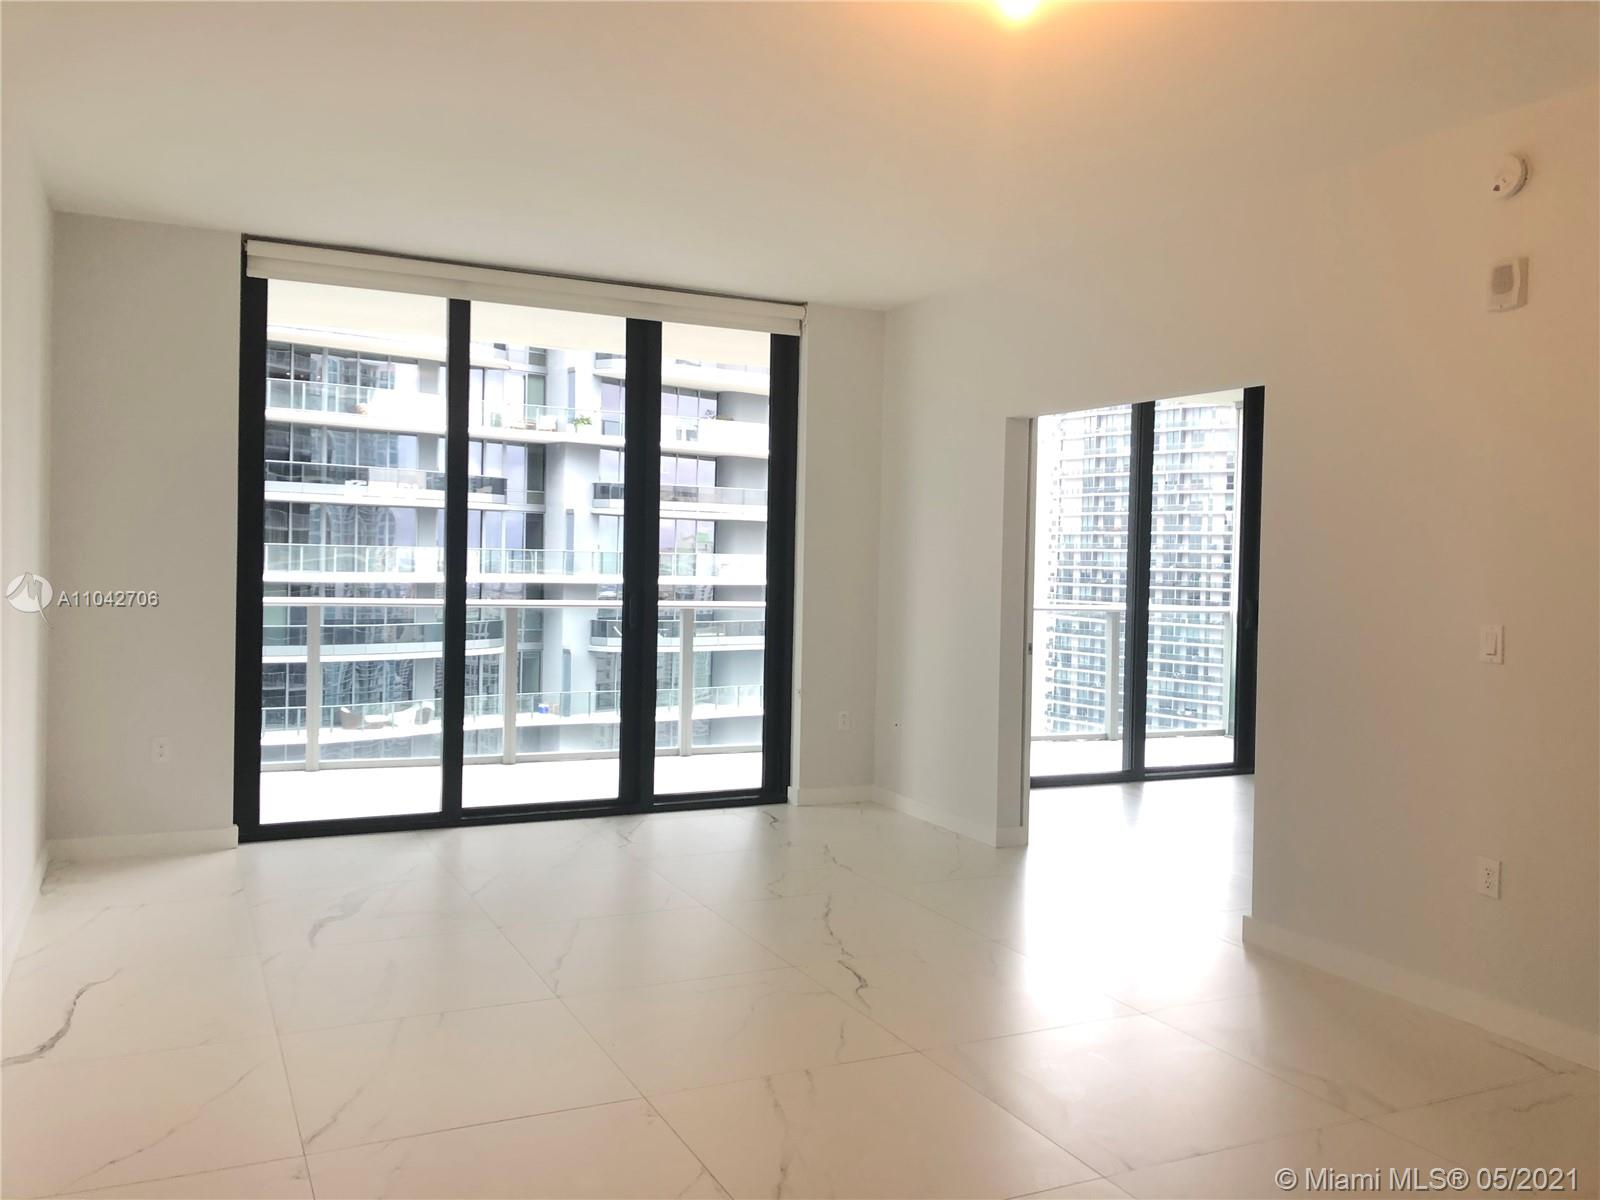 An exciting urban lifestyle awaits at 1010 Brickell! Spacious and bright 1 bed/1 bath unit on the 41st floor with marble-like tile floors throughout. No Carpets! Impact Floor-to-ceiling glass throughout providing plenty of natural light. Large balcony along the entire width of the unit with access from the living room and bedroom. European style open kitchen with the best appliances and ample storage. Two Built-out closets. Washer/Dryer in unit. 1010 Brickell offers: 24/7 security, indoor and rooftop pool, gym, spa, children's play area, valet parking and much more! Walk to all the best in Brickell. Sorry no pets. Immaculate unit and available now for immediate occupancy!